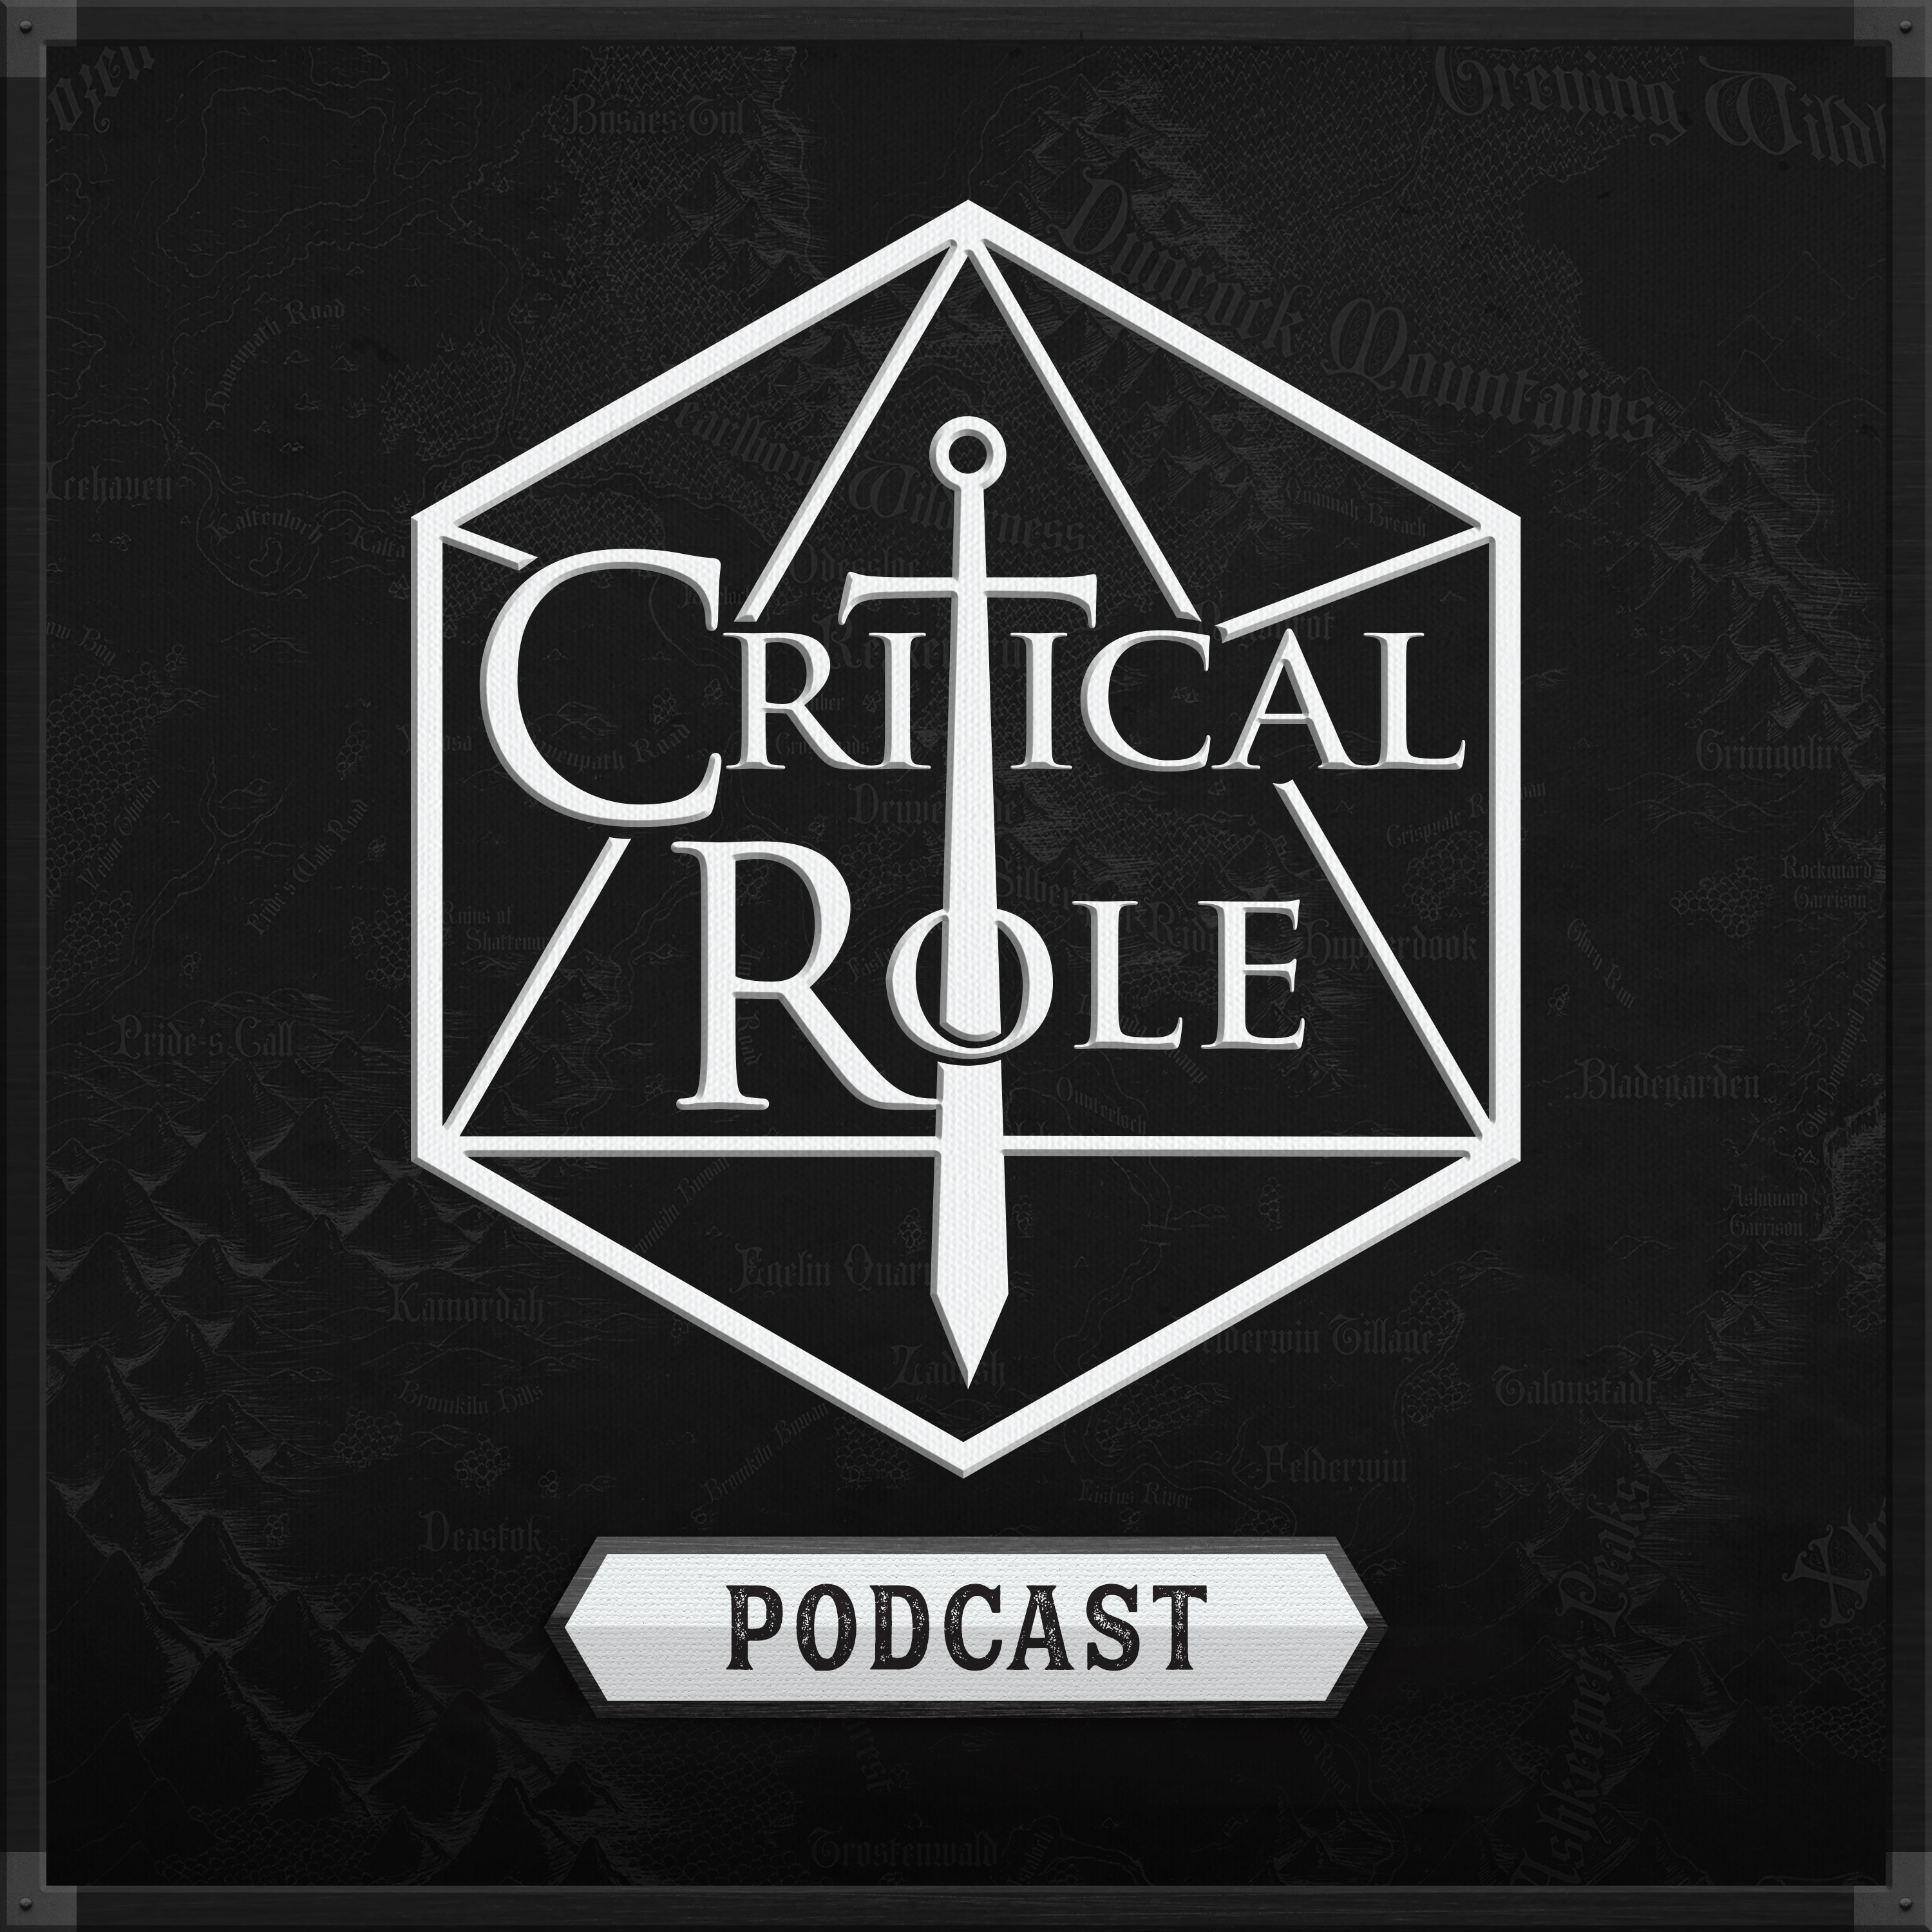 Best Episodes Of Critical Role Podchaser Read through the transcription instructions then go to the transcription doc for c2e52: best episodes of critical role podchaser